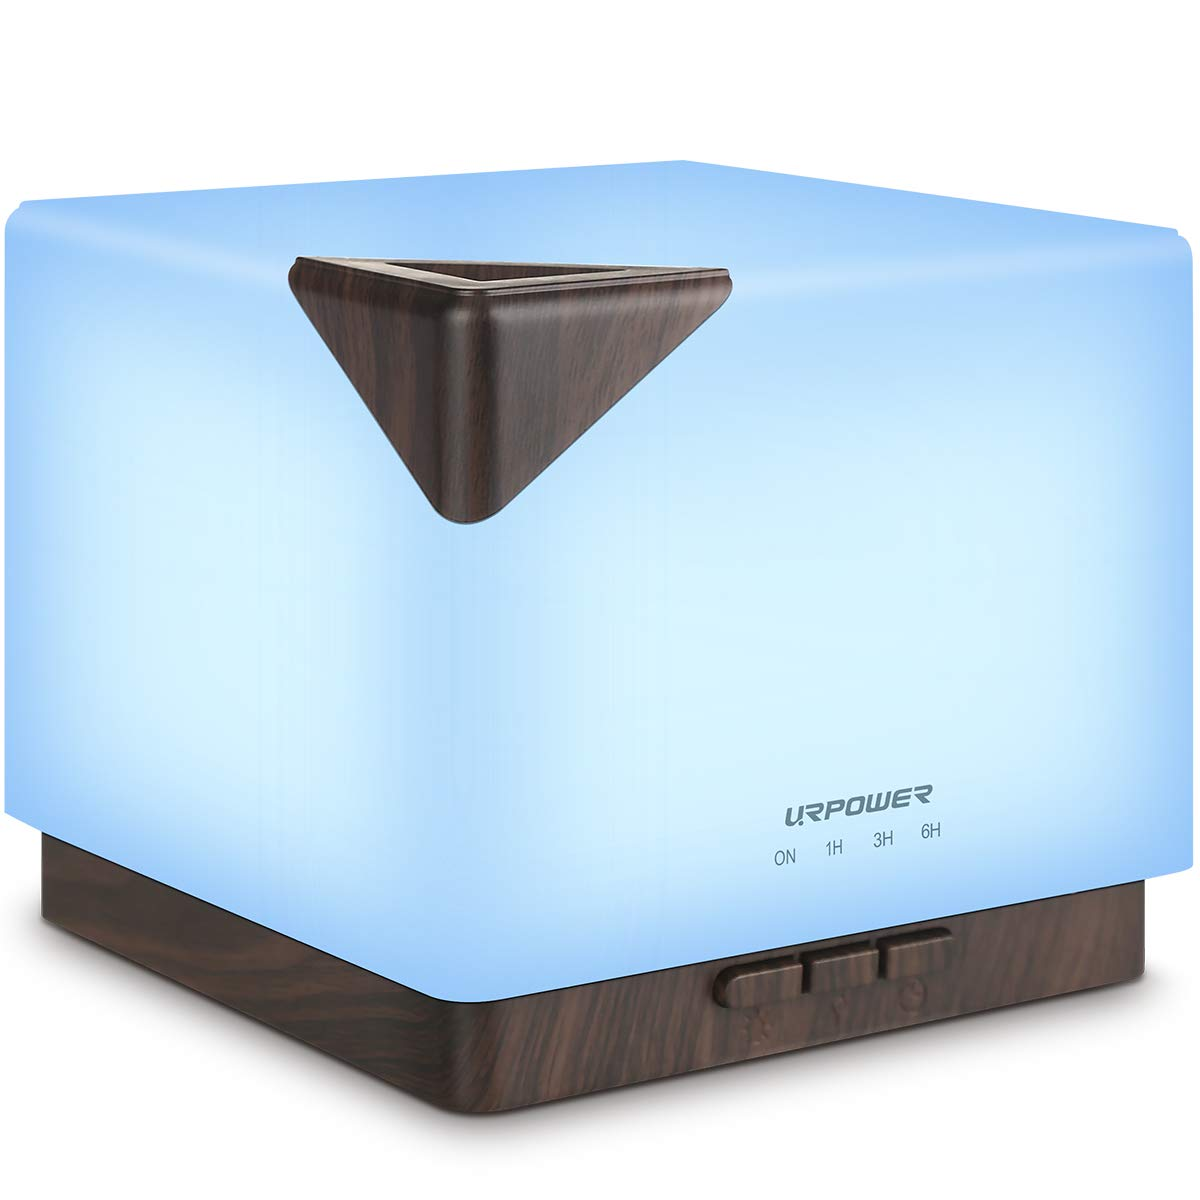 URPOWER 700ml Square Aromatherapy Essential Oil Diffuser Humidifier Large Capacity Modern Ultrasonic Aroma Diffusers Running 20+ Hours 7 Color Changing for Home Baby Bedroom Office Study Yoga Spa by URPOWER